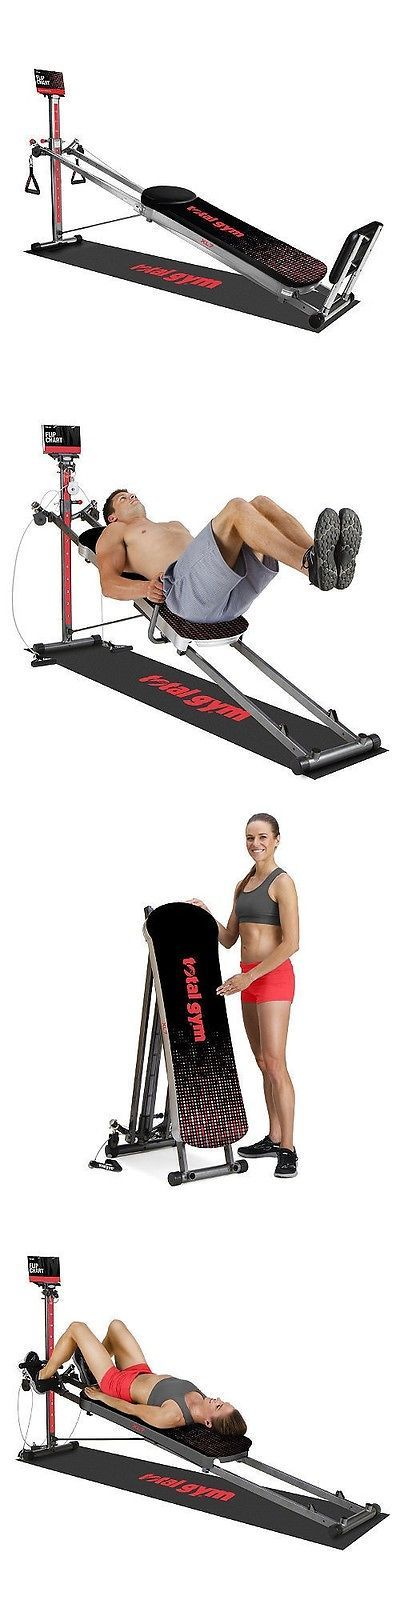 Home Gyms 158923: Total Gym Xl7 Home Gym With Workout Dvds -> BUY IT NOW ONLY: $335.98 on eBay!